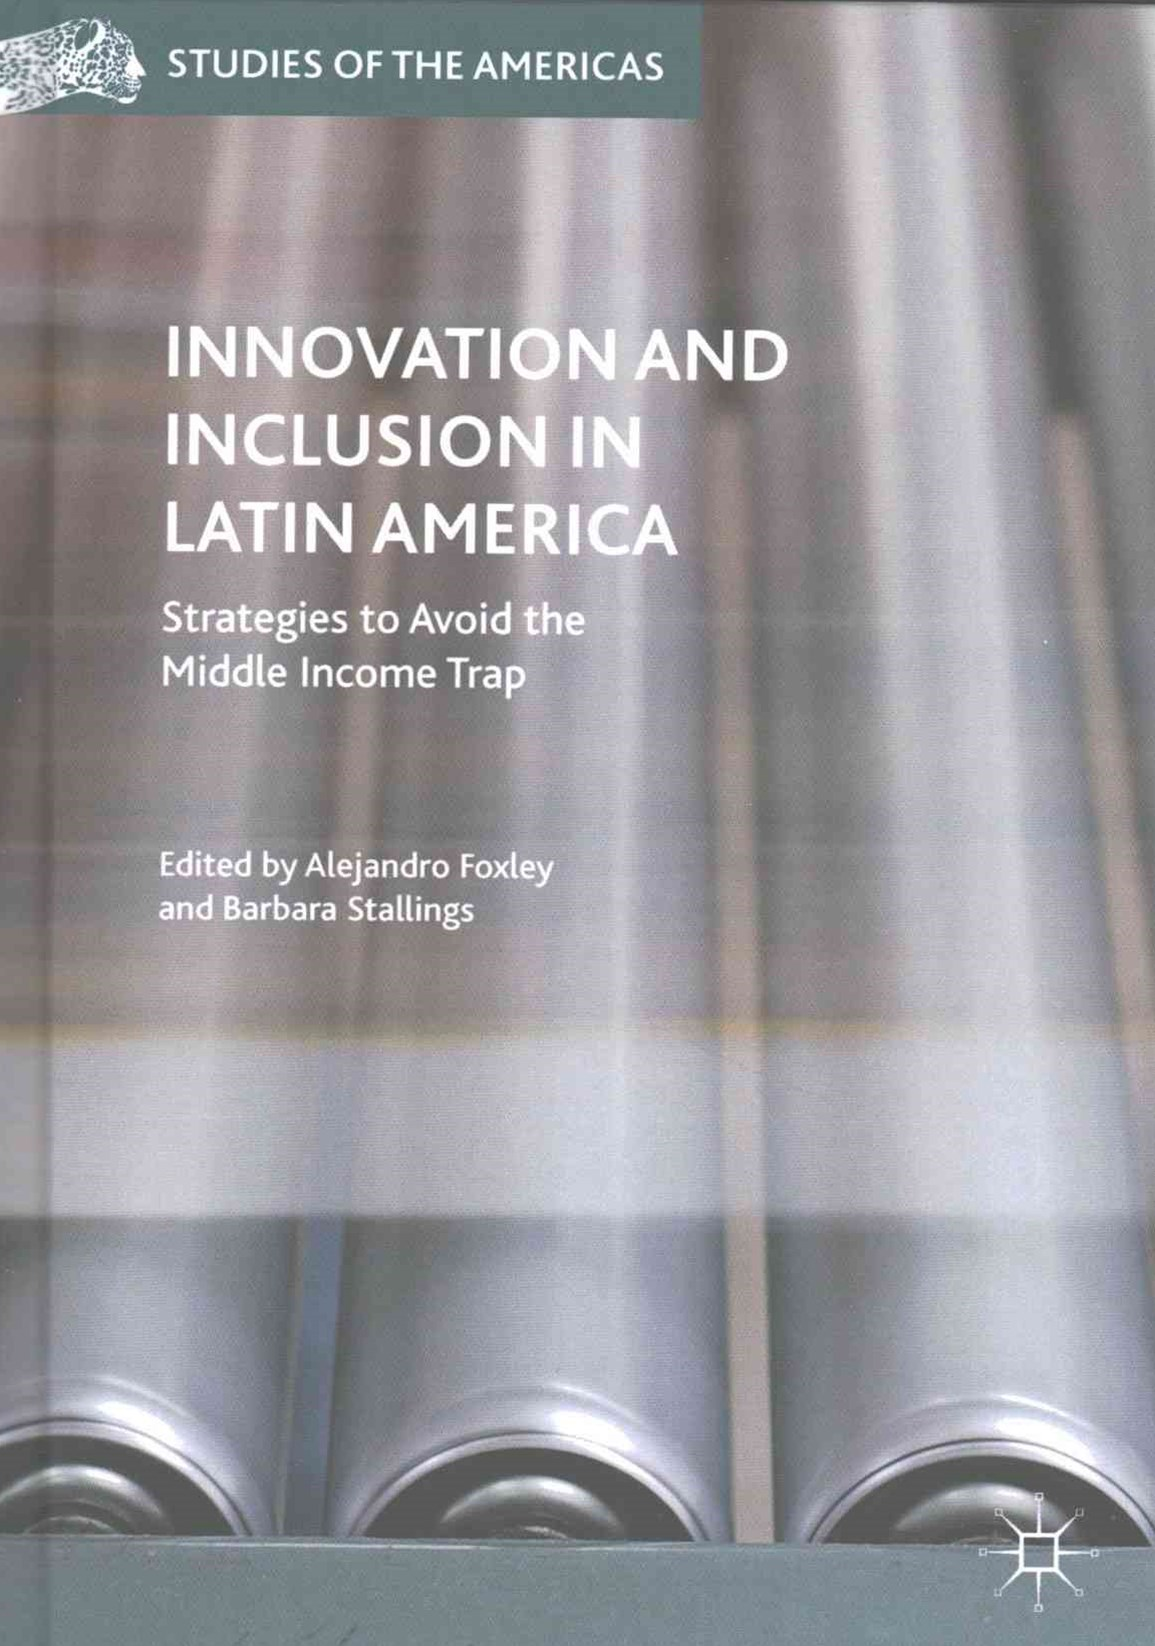 Innovation and Inclusion in Latin America